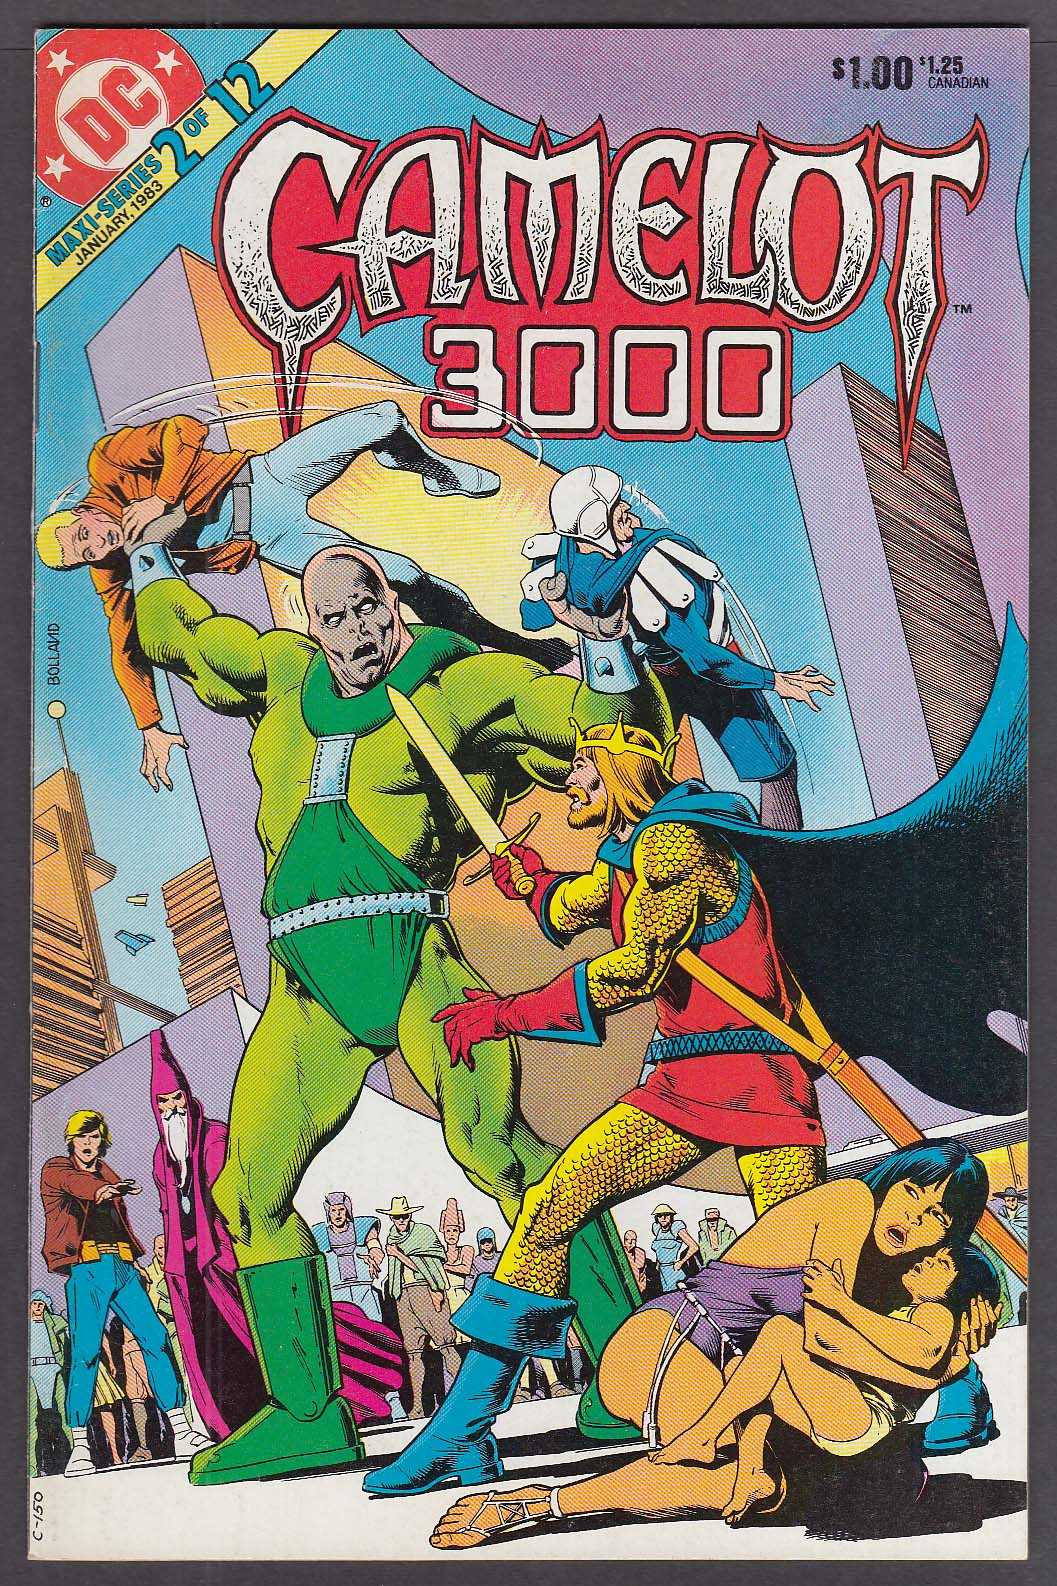 Image for CAMELOT 3000 #2 DC comic book 1/1983